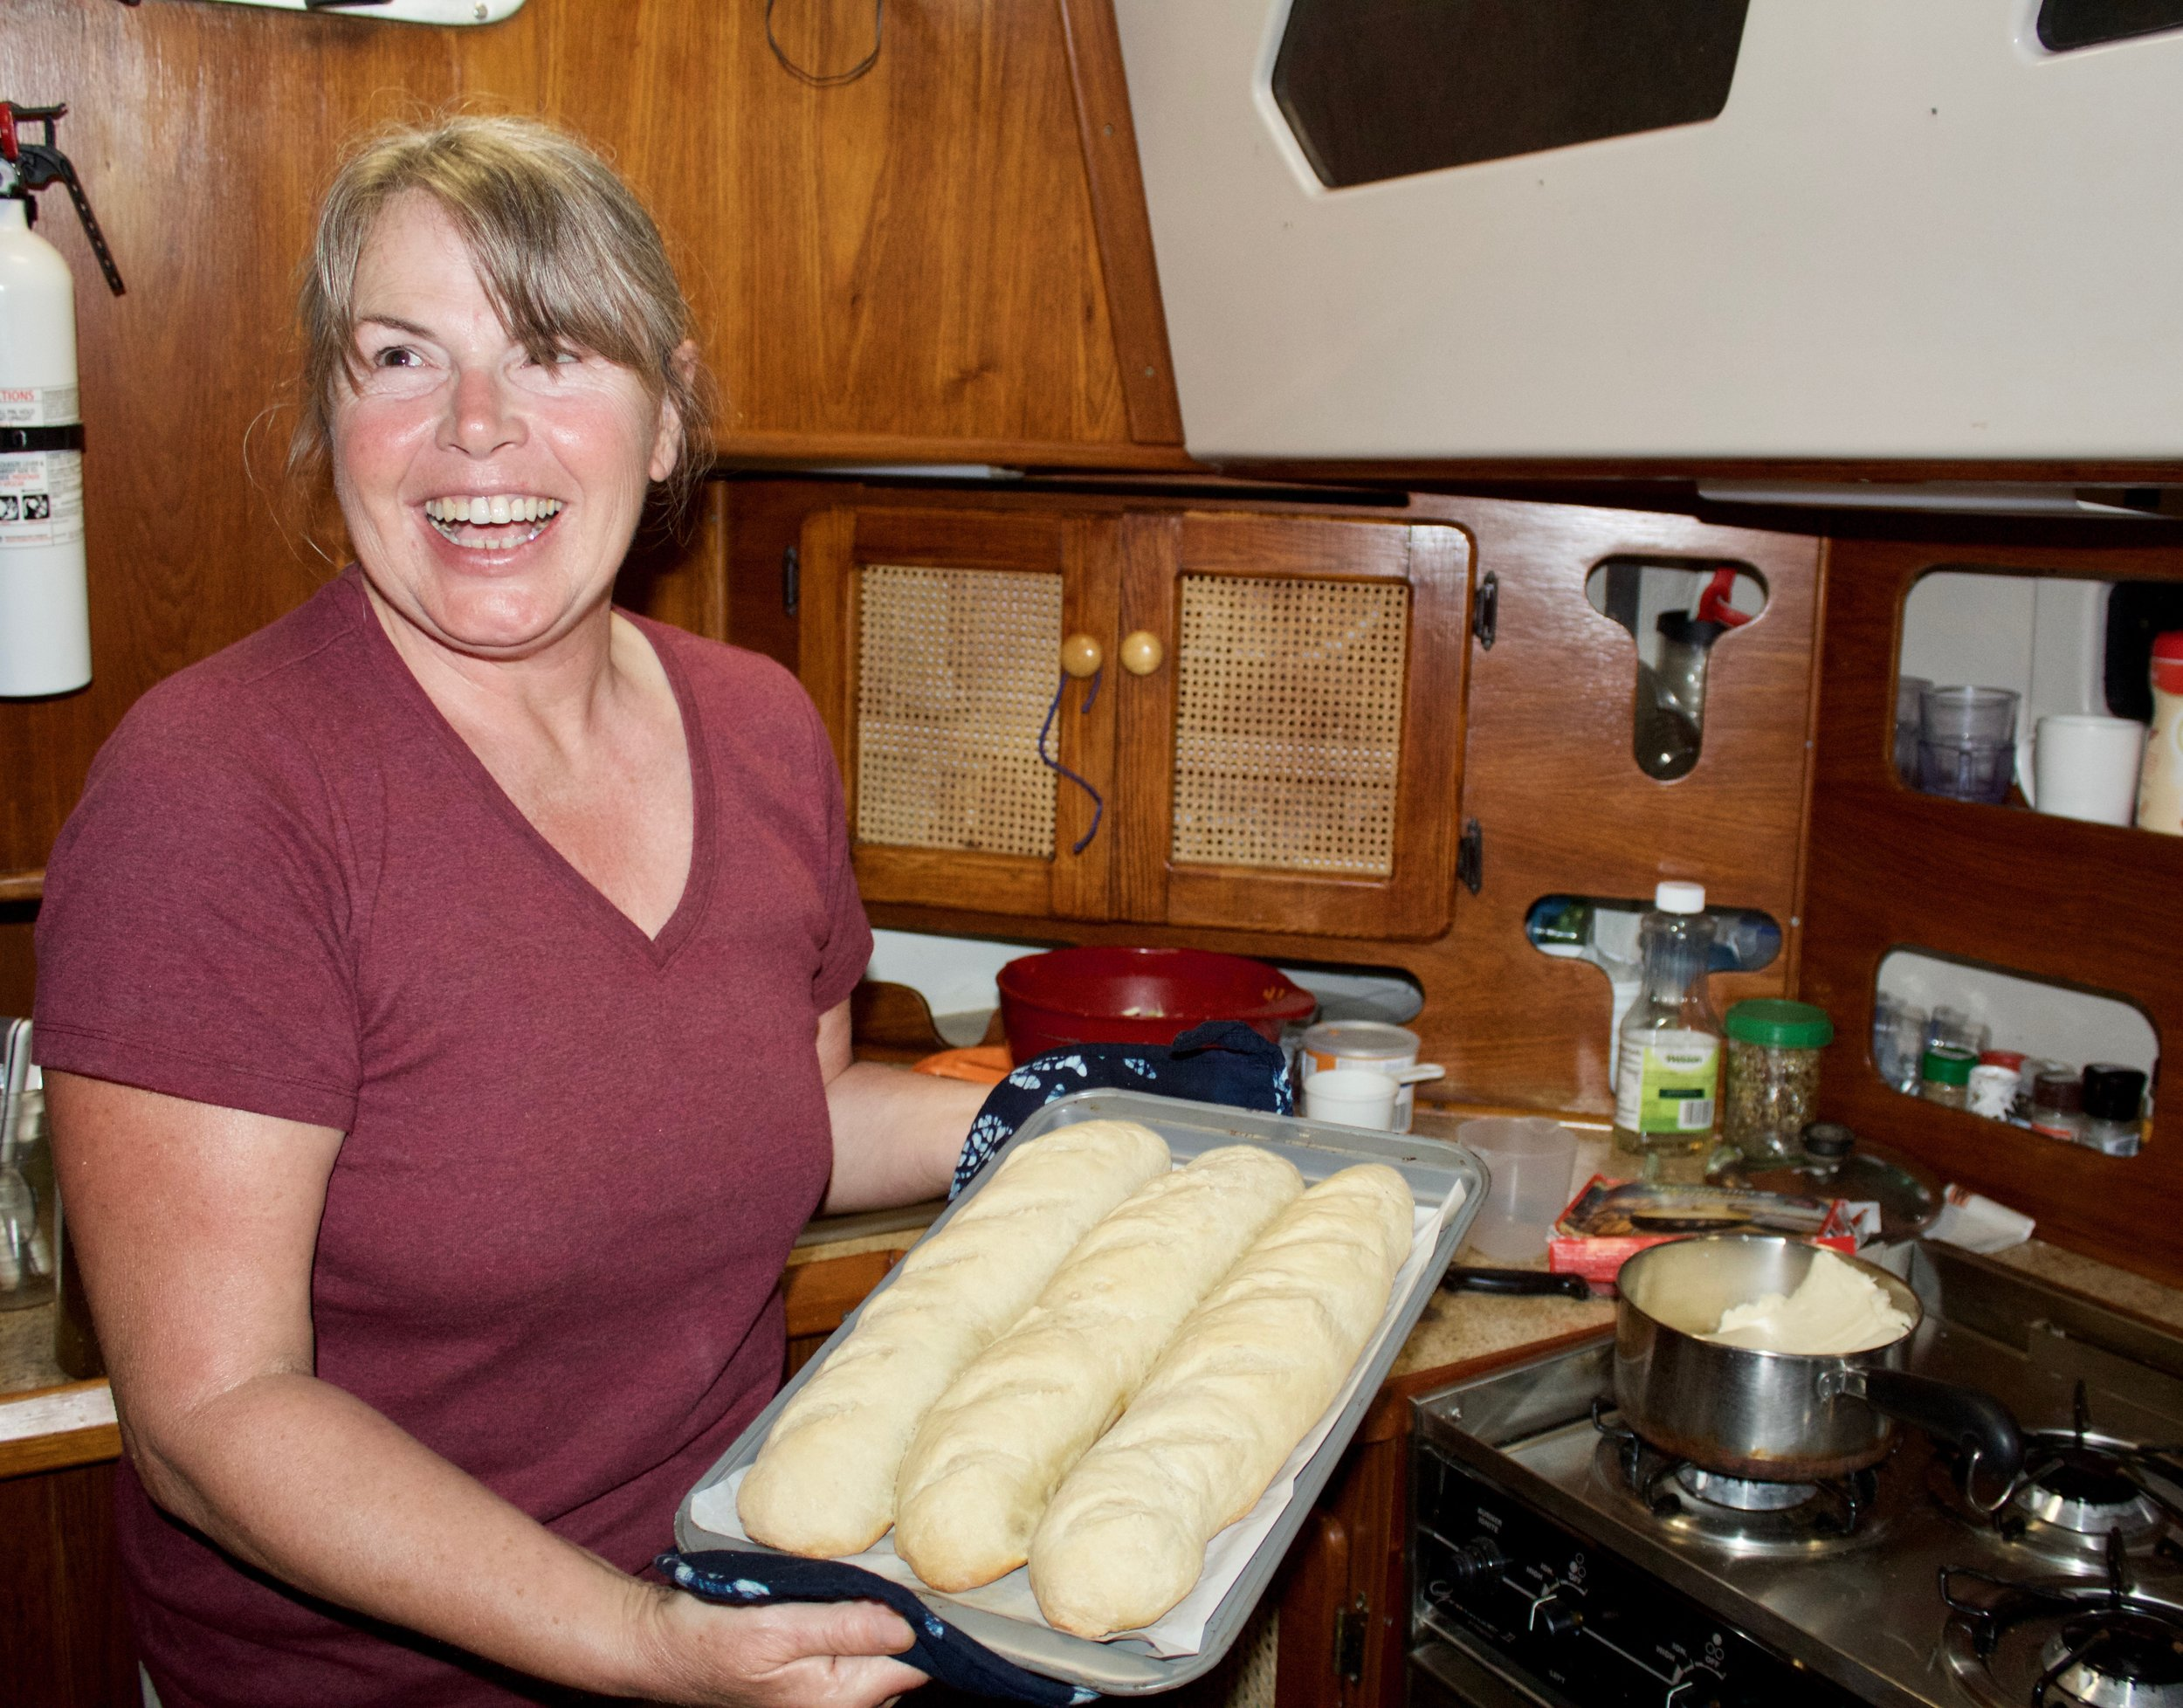 You cannot beat fresh bread! Wendy experiments with some loaves of crusty french bread. Her expertise in the kitchen is a big part of why our expeditions meals are so delicious.